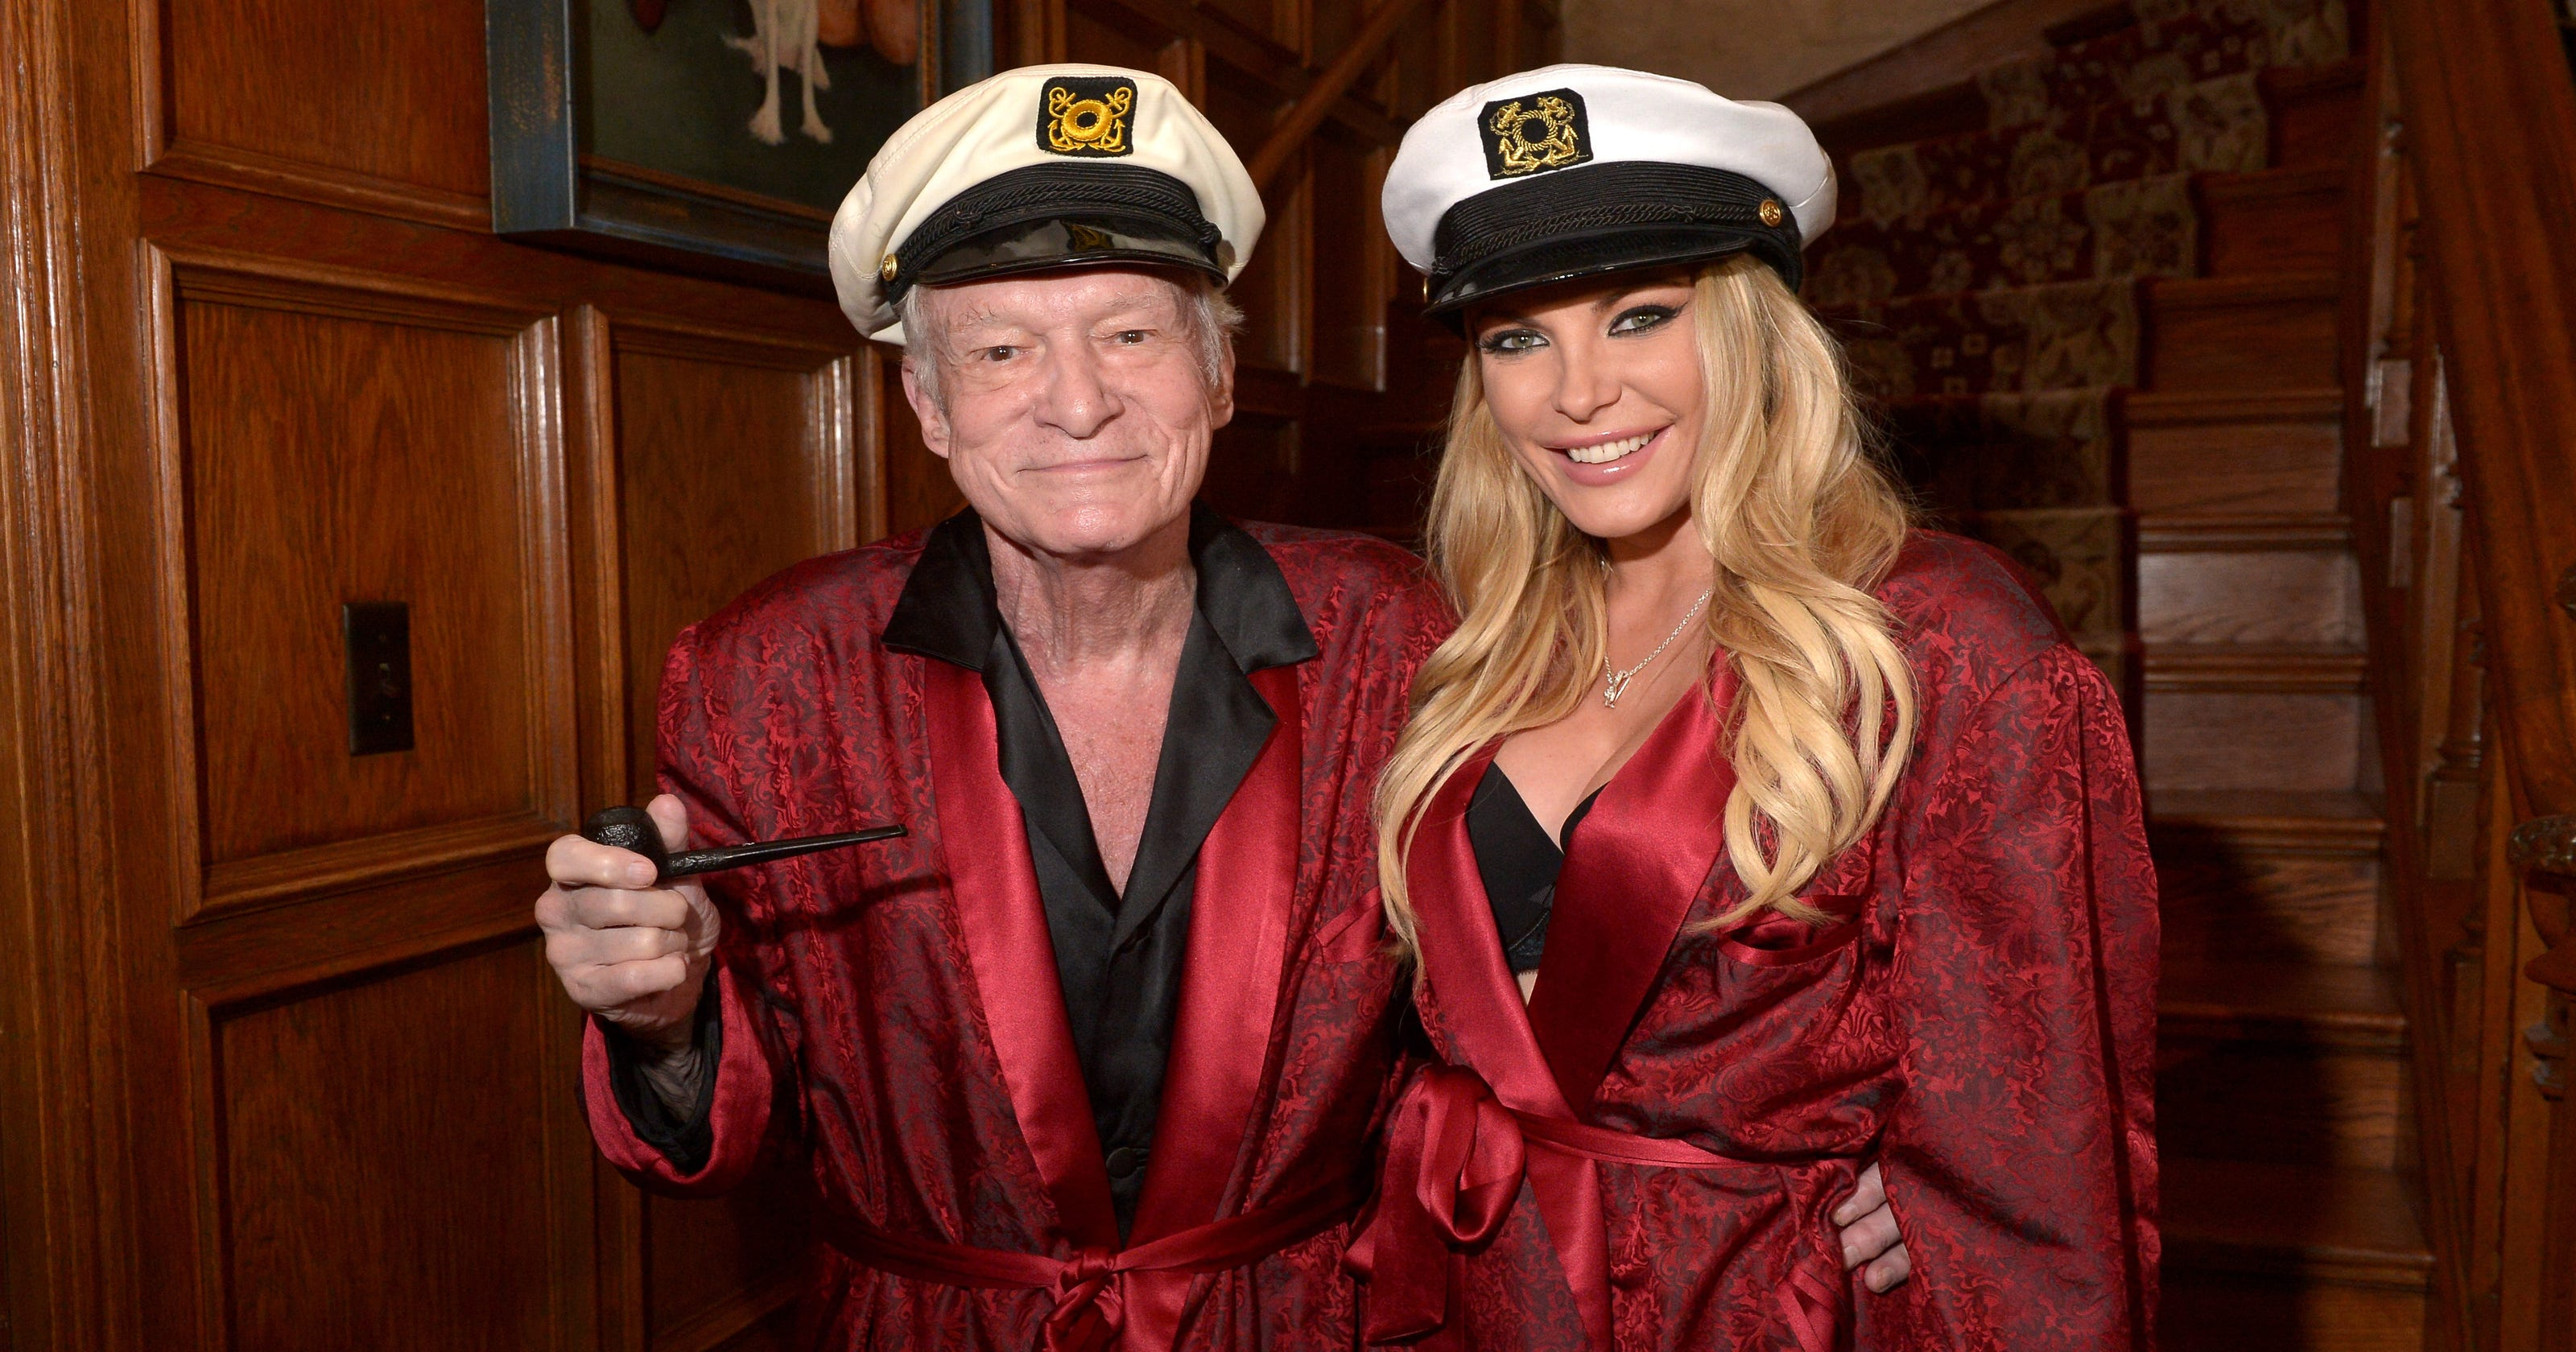 Playboy magazine founder Hugh Hefner dies at 91 adf06ab8f716